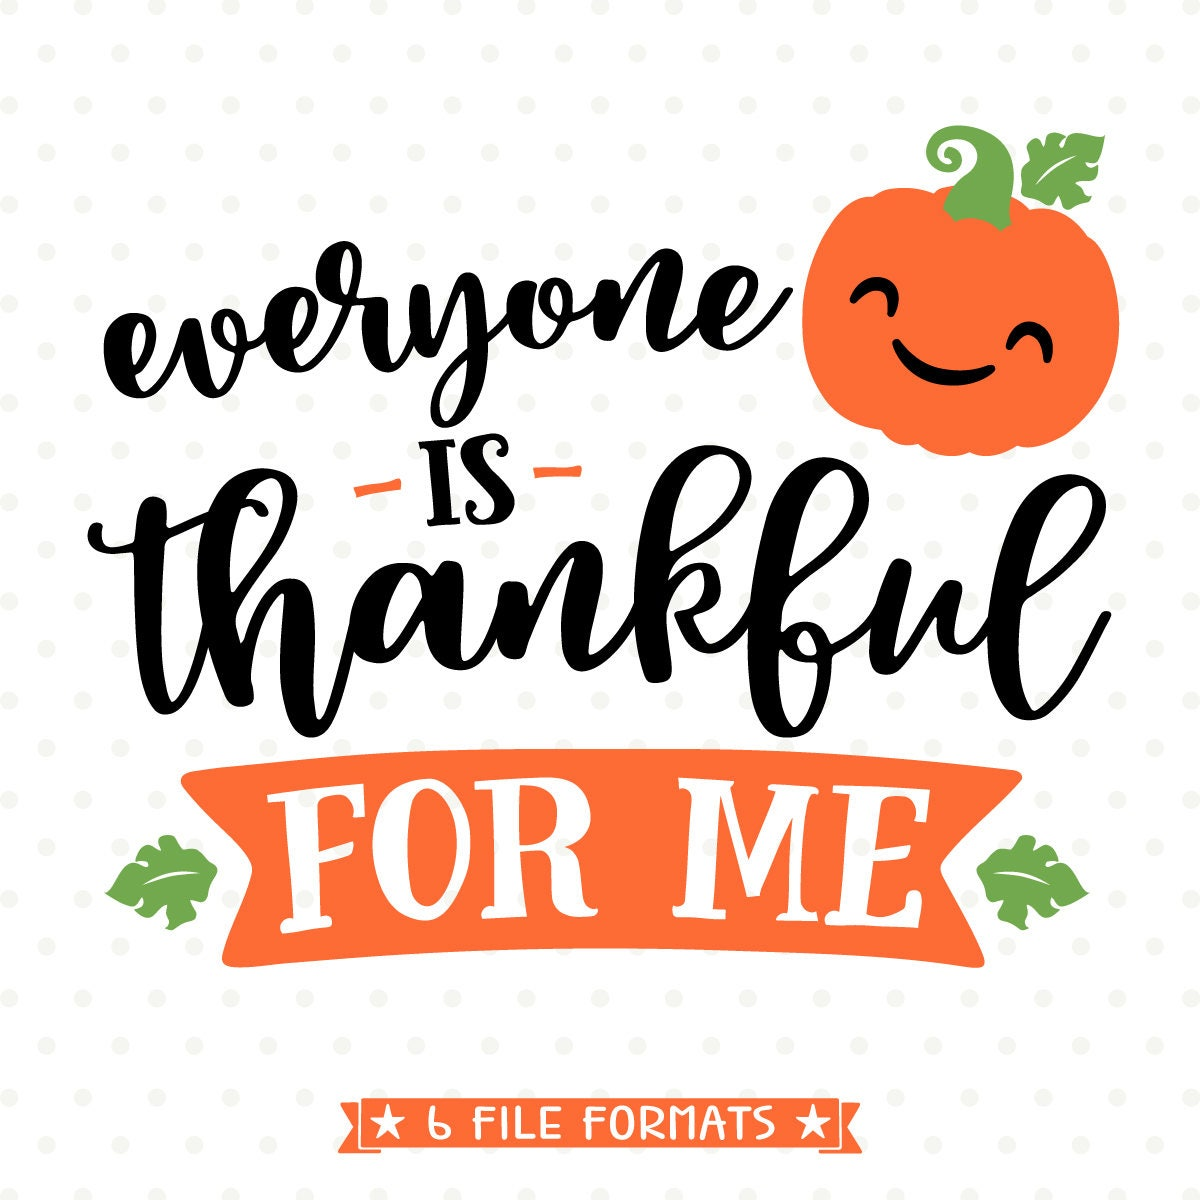 Download 1st Thanksgiving SVG Thanksgiving Day SVG Everyone is | Etsy